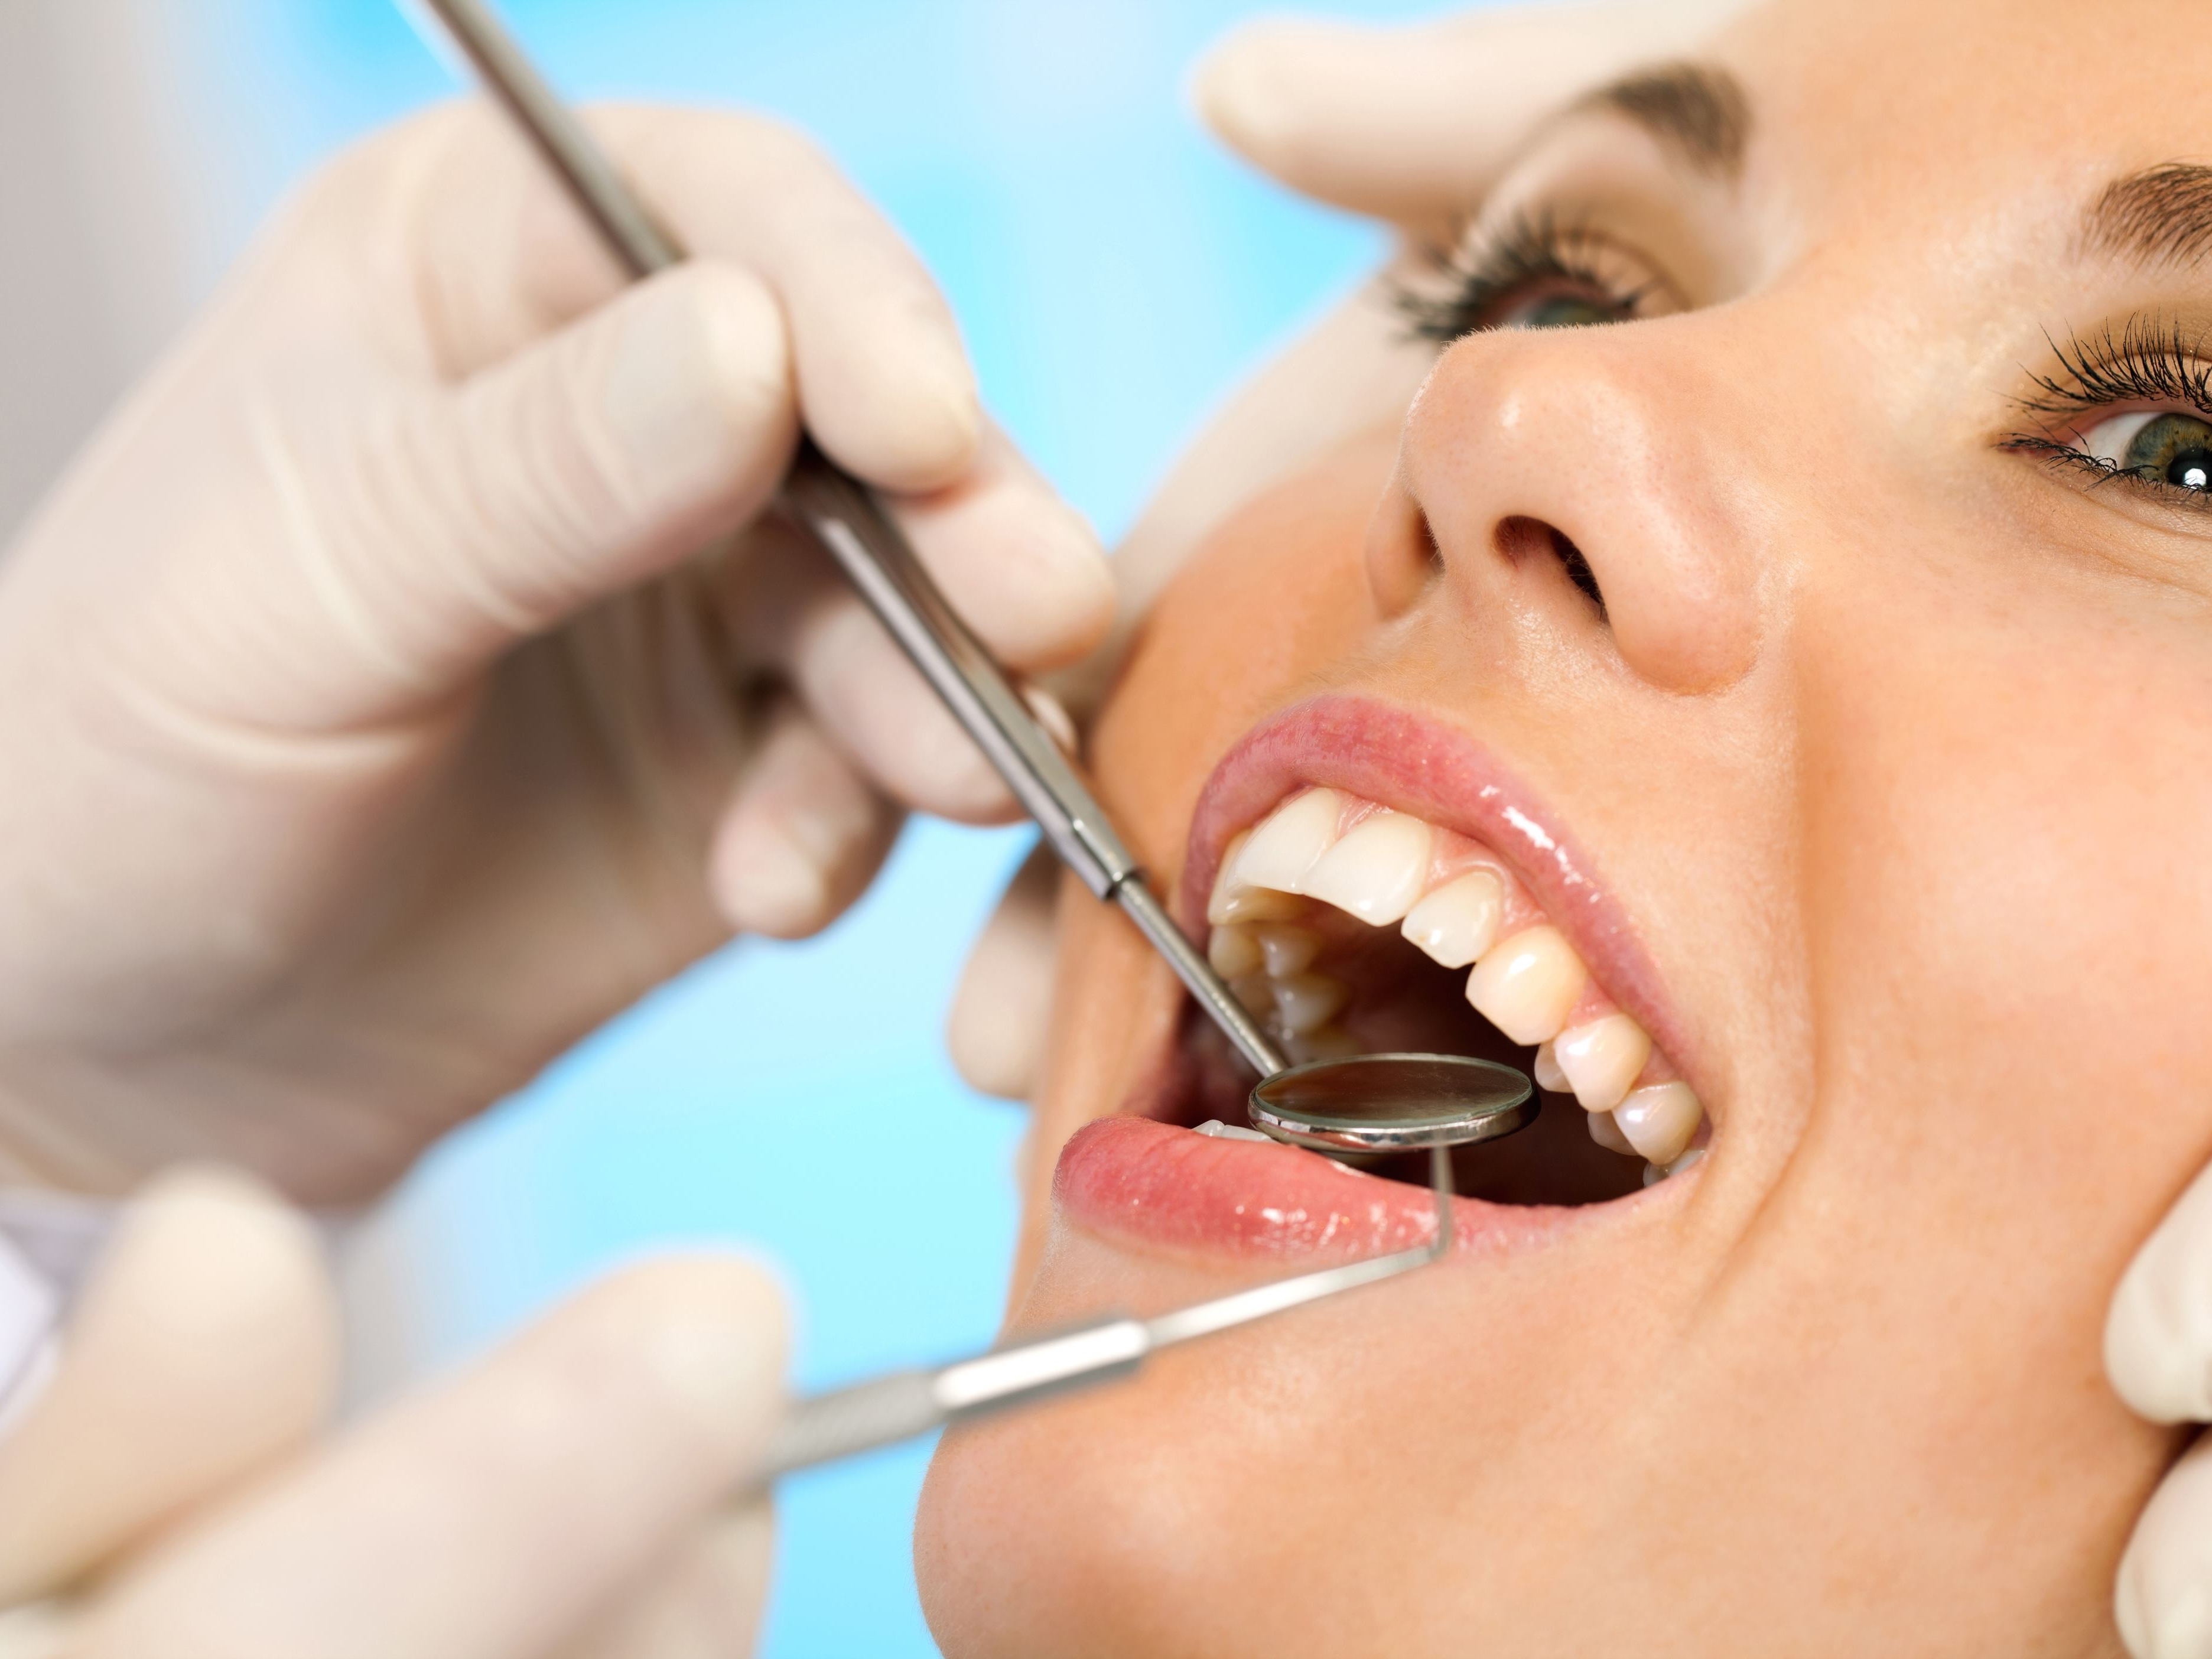 Hillhouse, Goldman Sachs Inject $90M In China's Arrail Dental – China Money Network